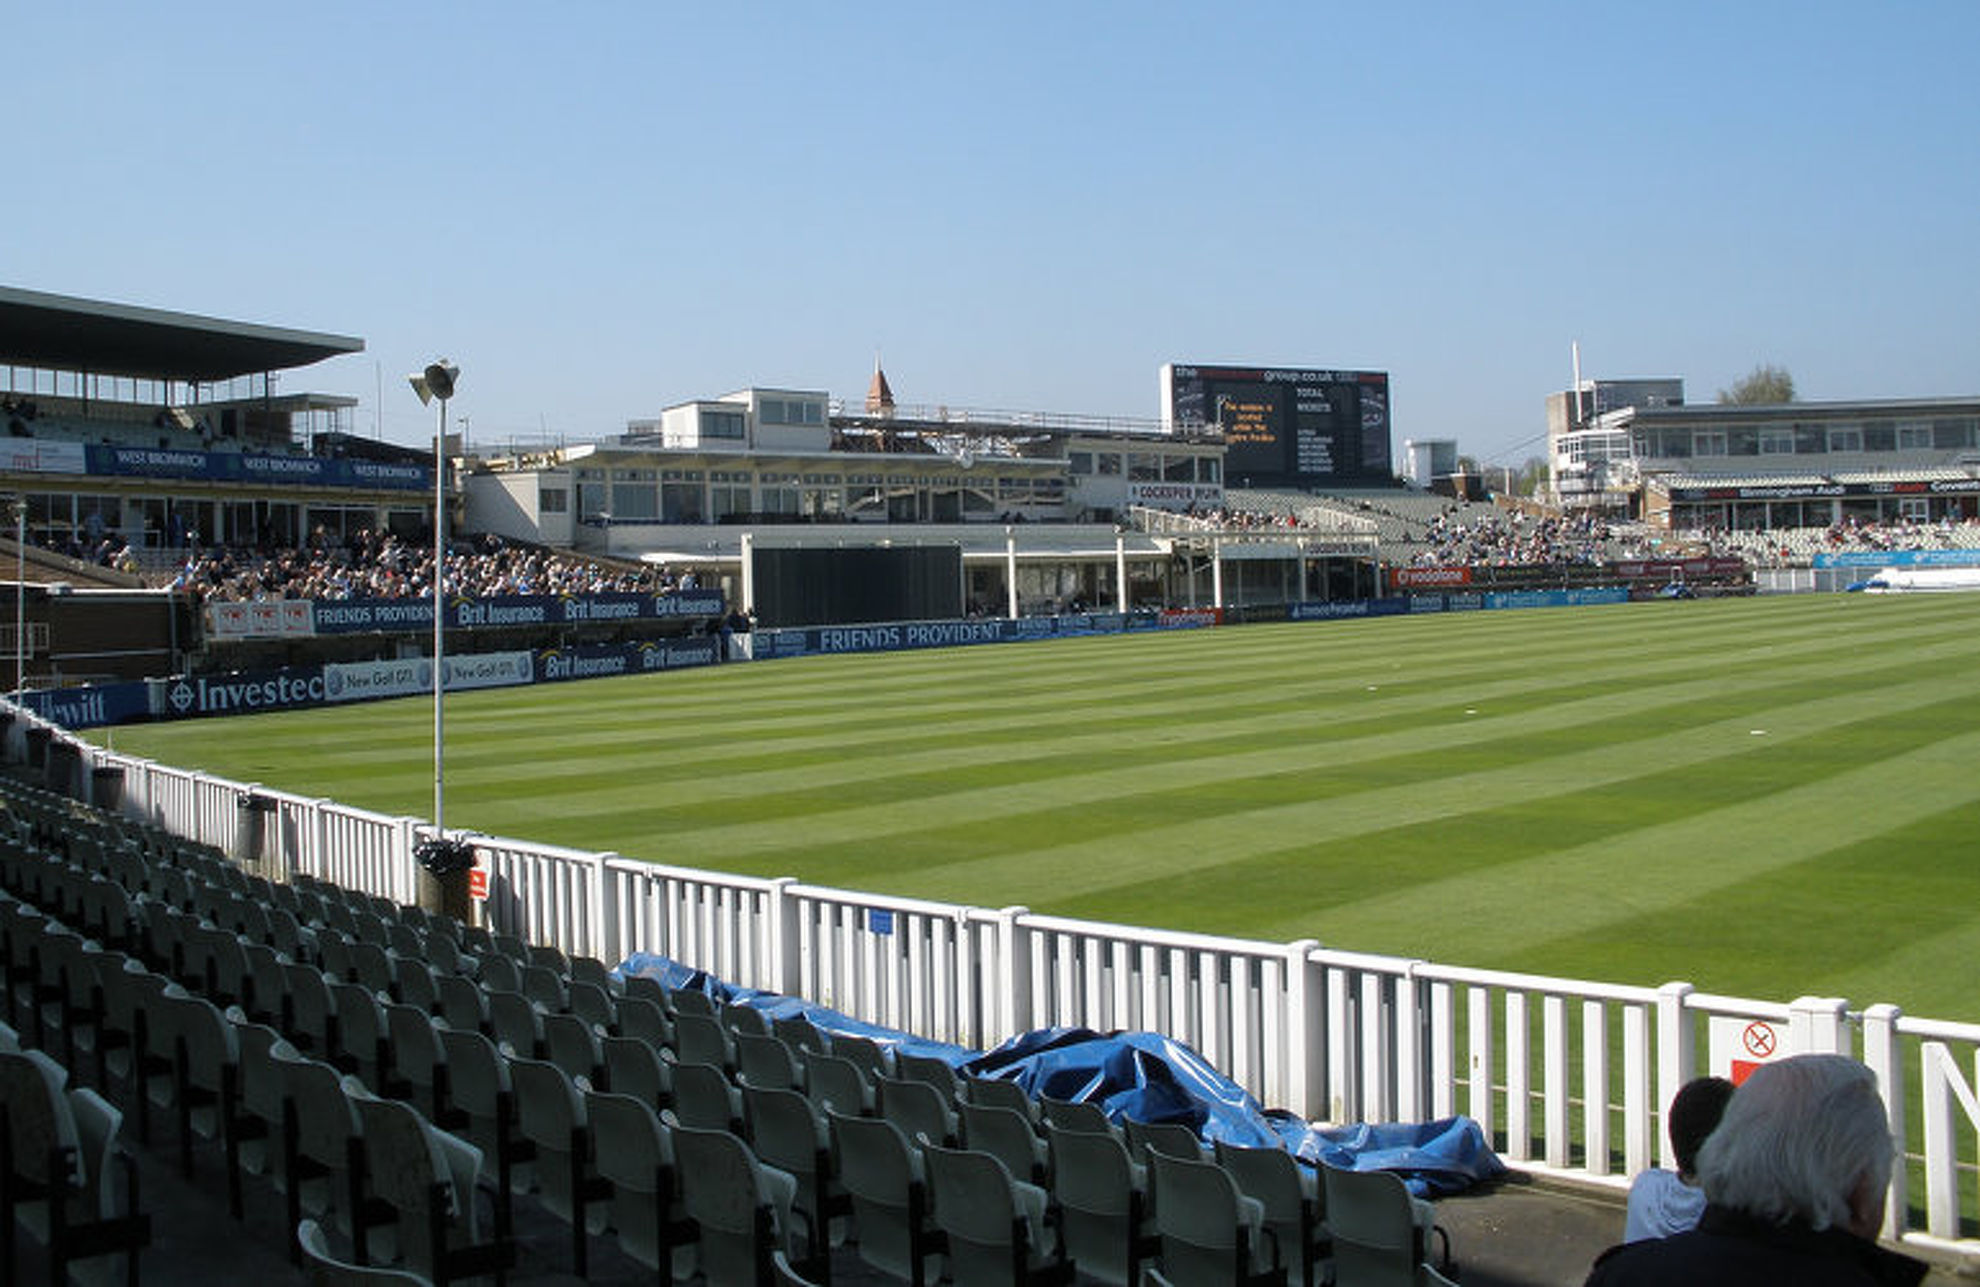 Explore Edgbaston Cricket Ground